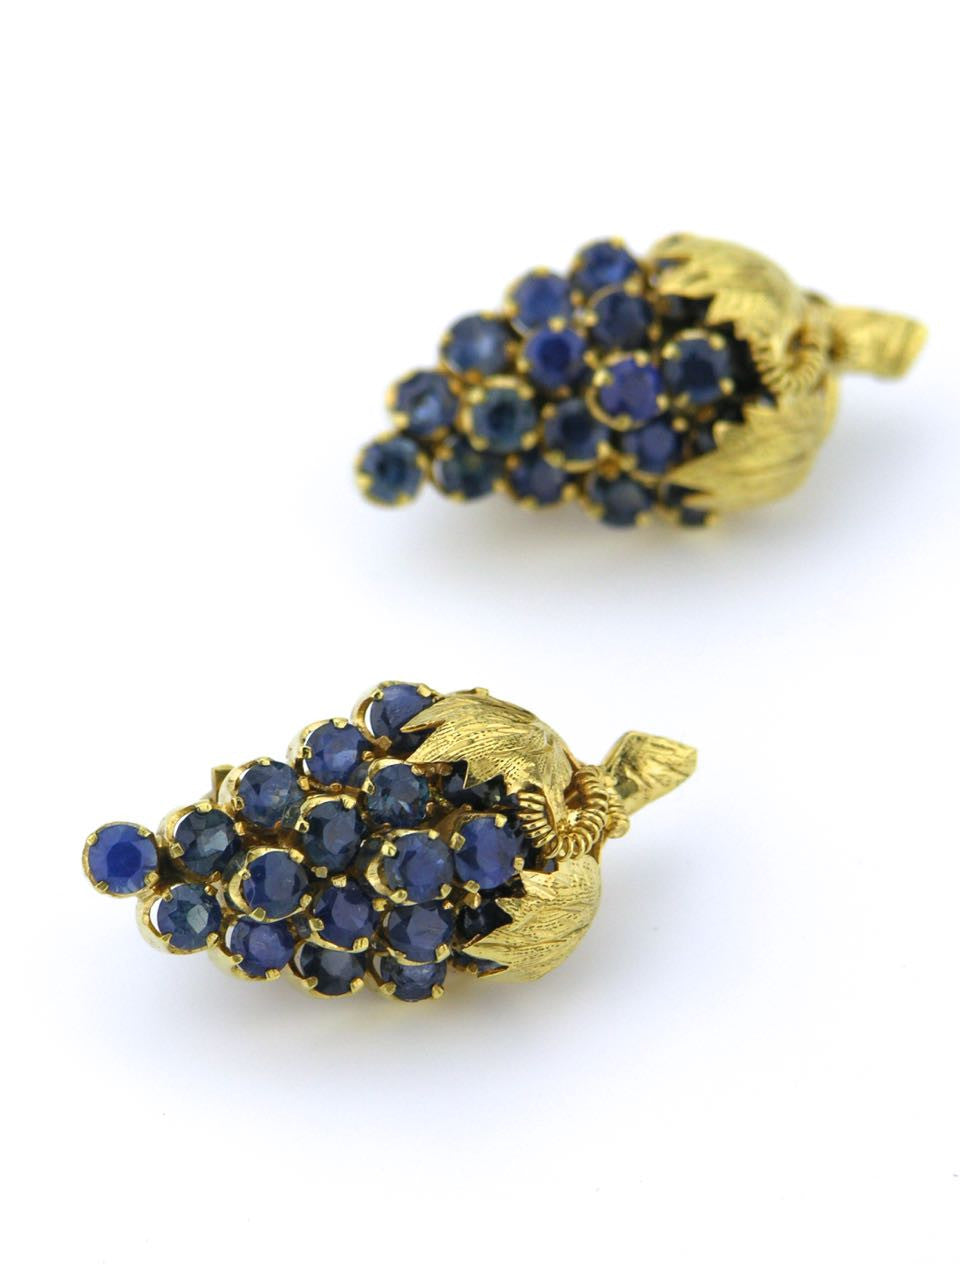 American 14ct yellow gold and blue sapphire clip earrings